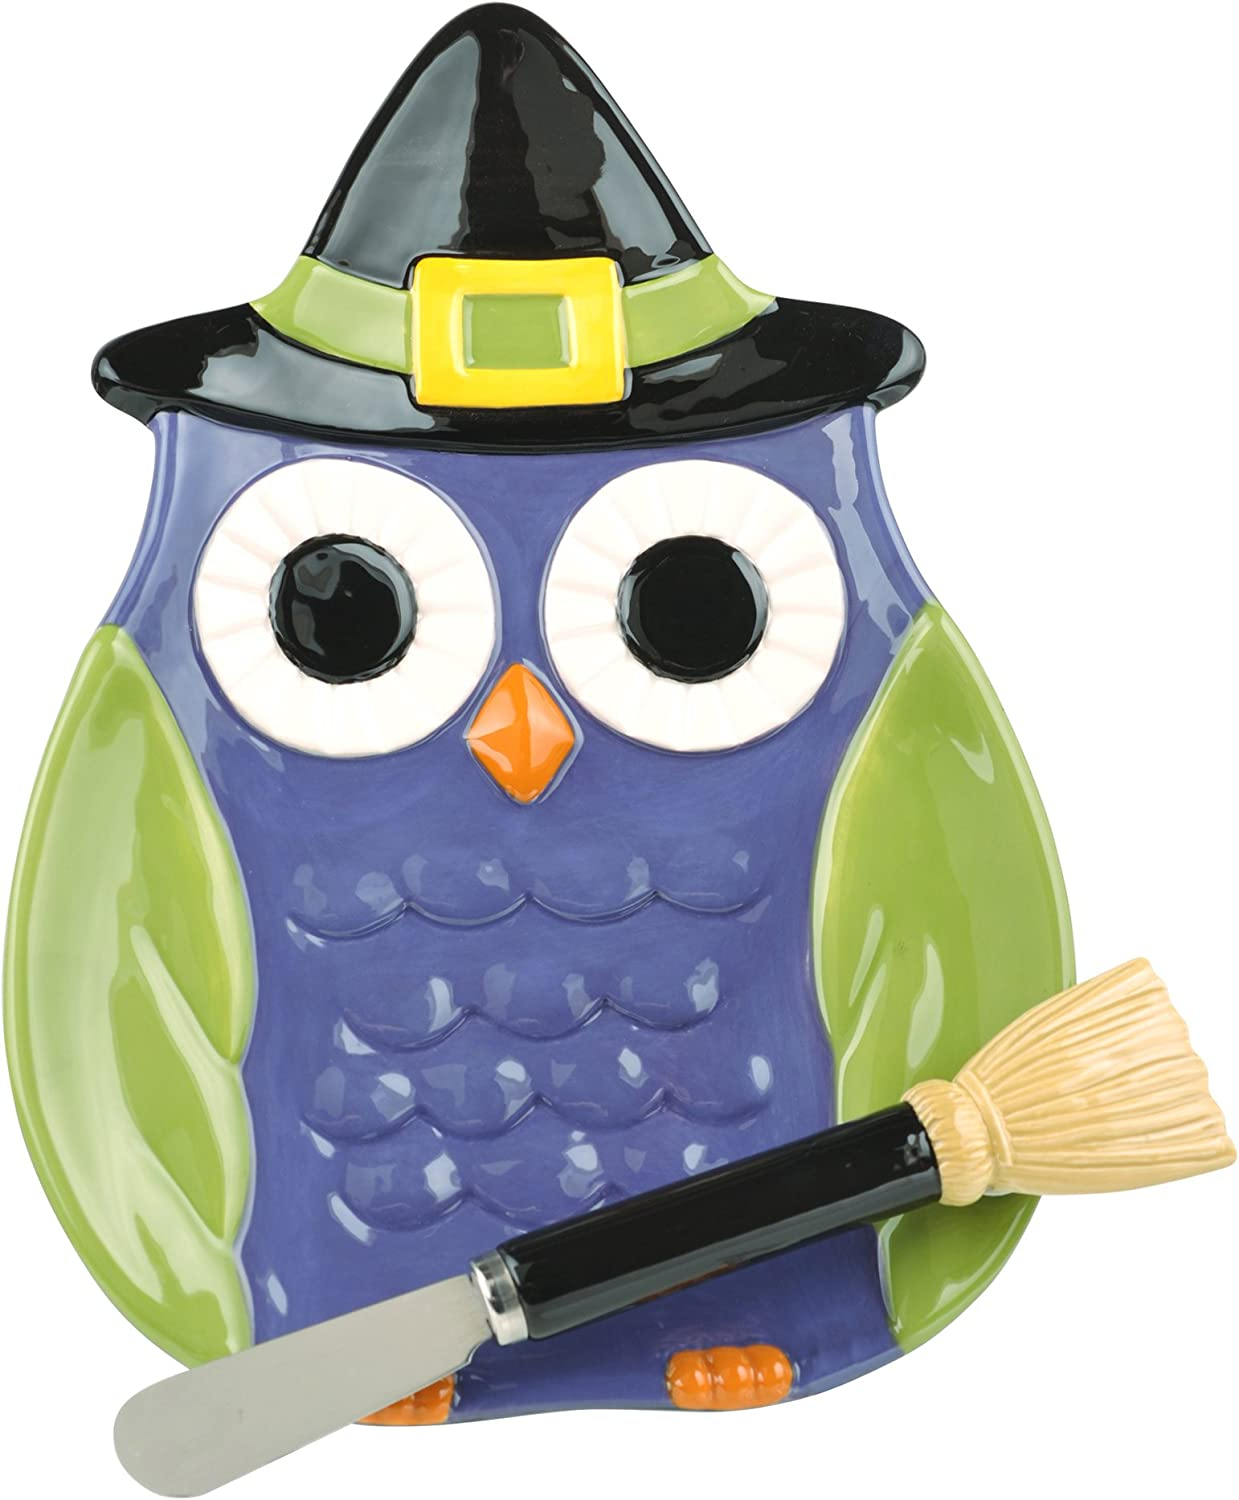 Grasslands Road 3-Pack Ceramic Midnight Owl Plate with Spreader 9-Inch